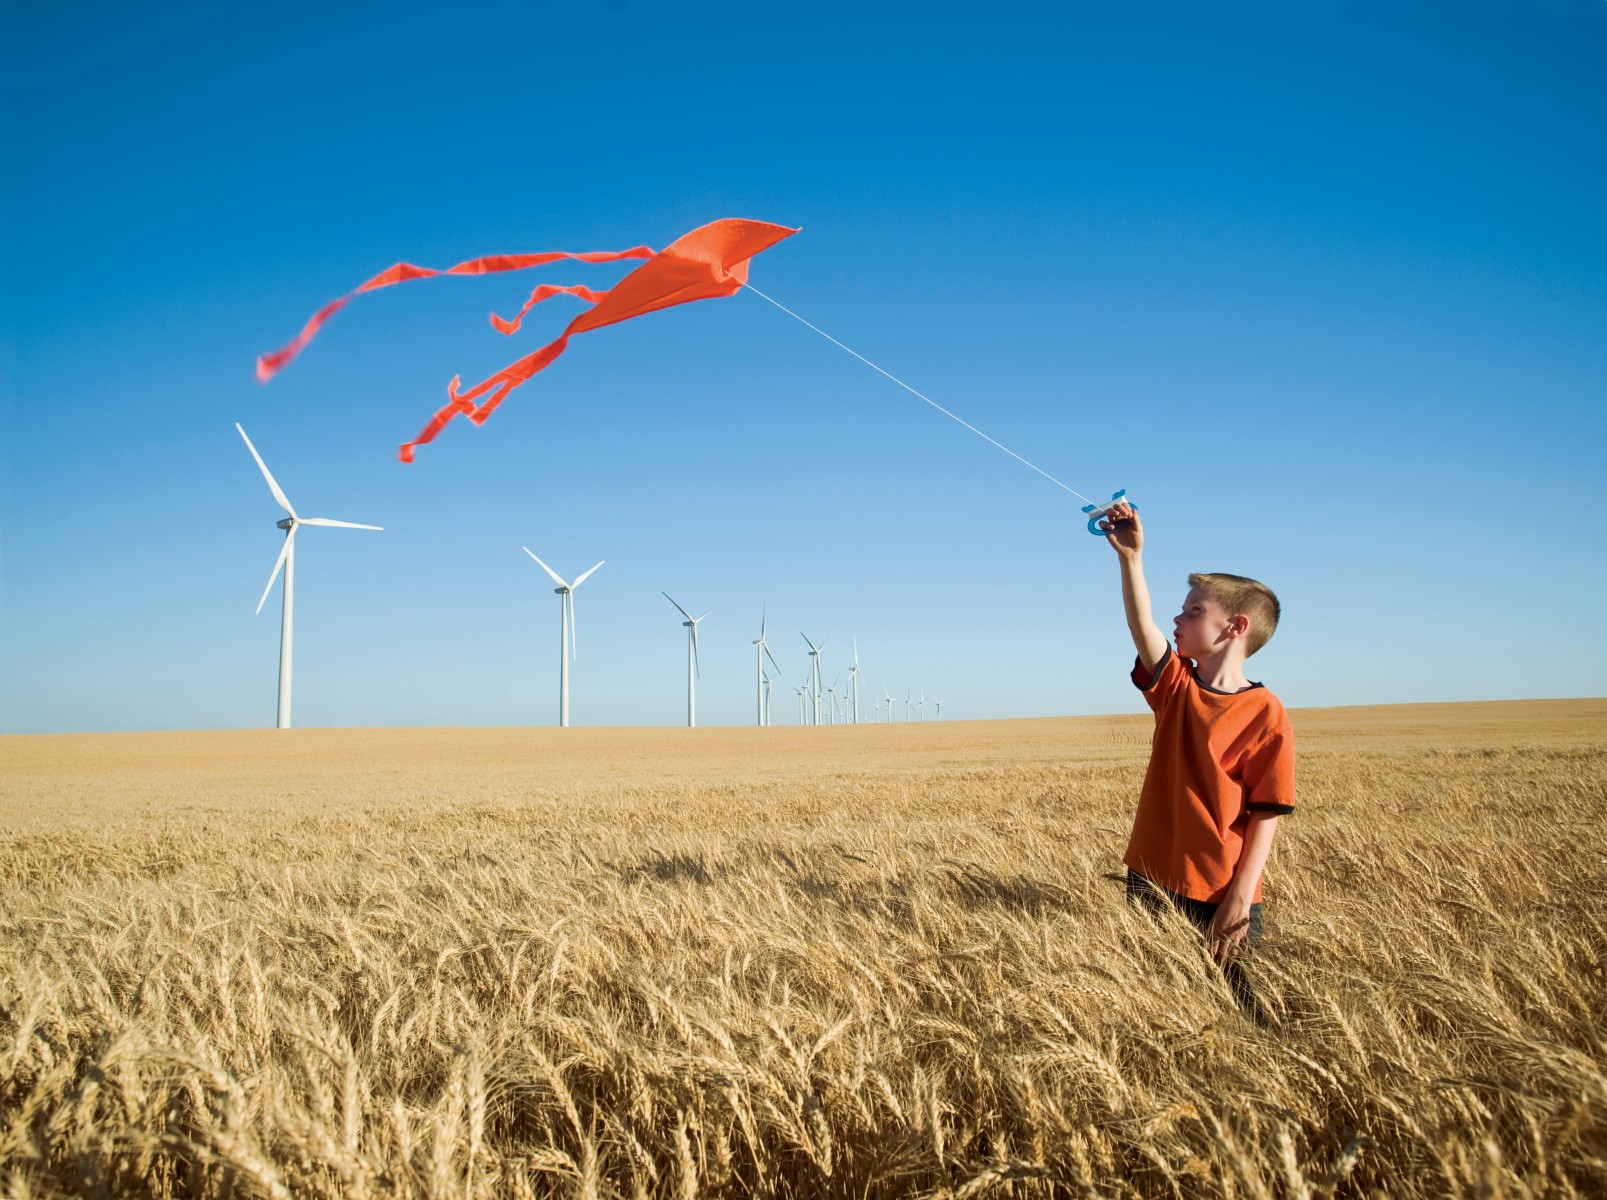 Young_boy_with_kite_in_corn_field_with_wind_turbines_rgb